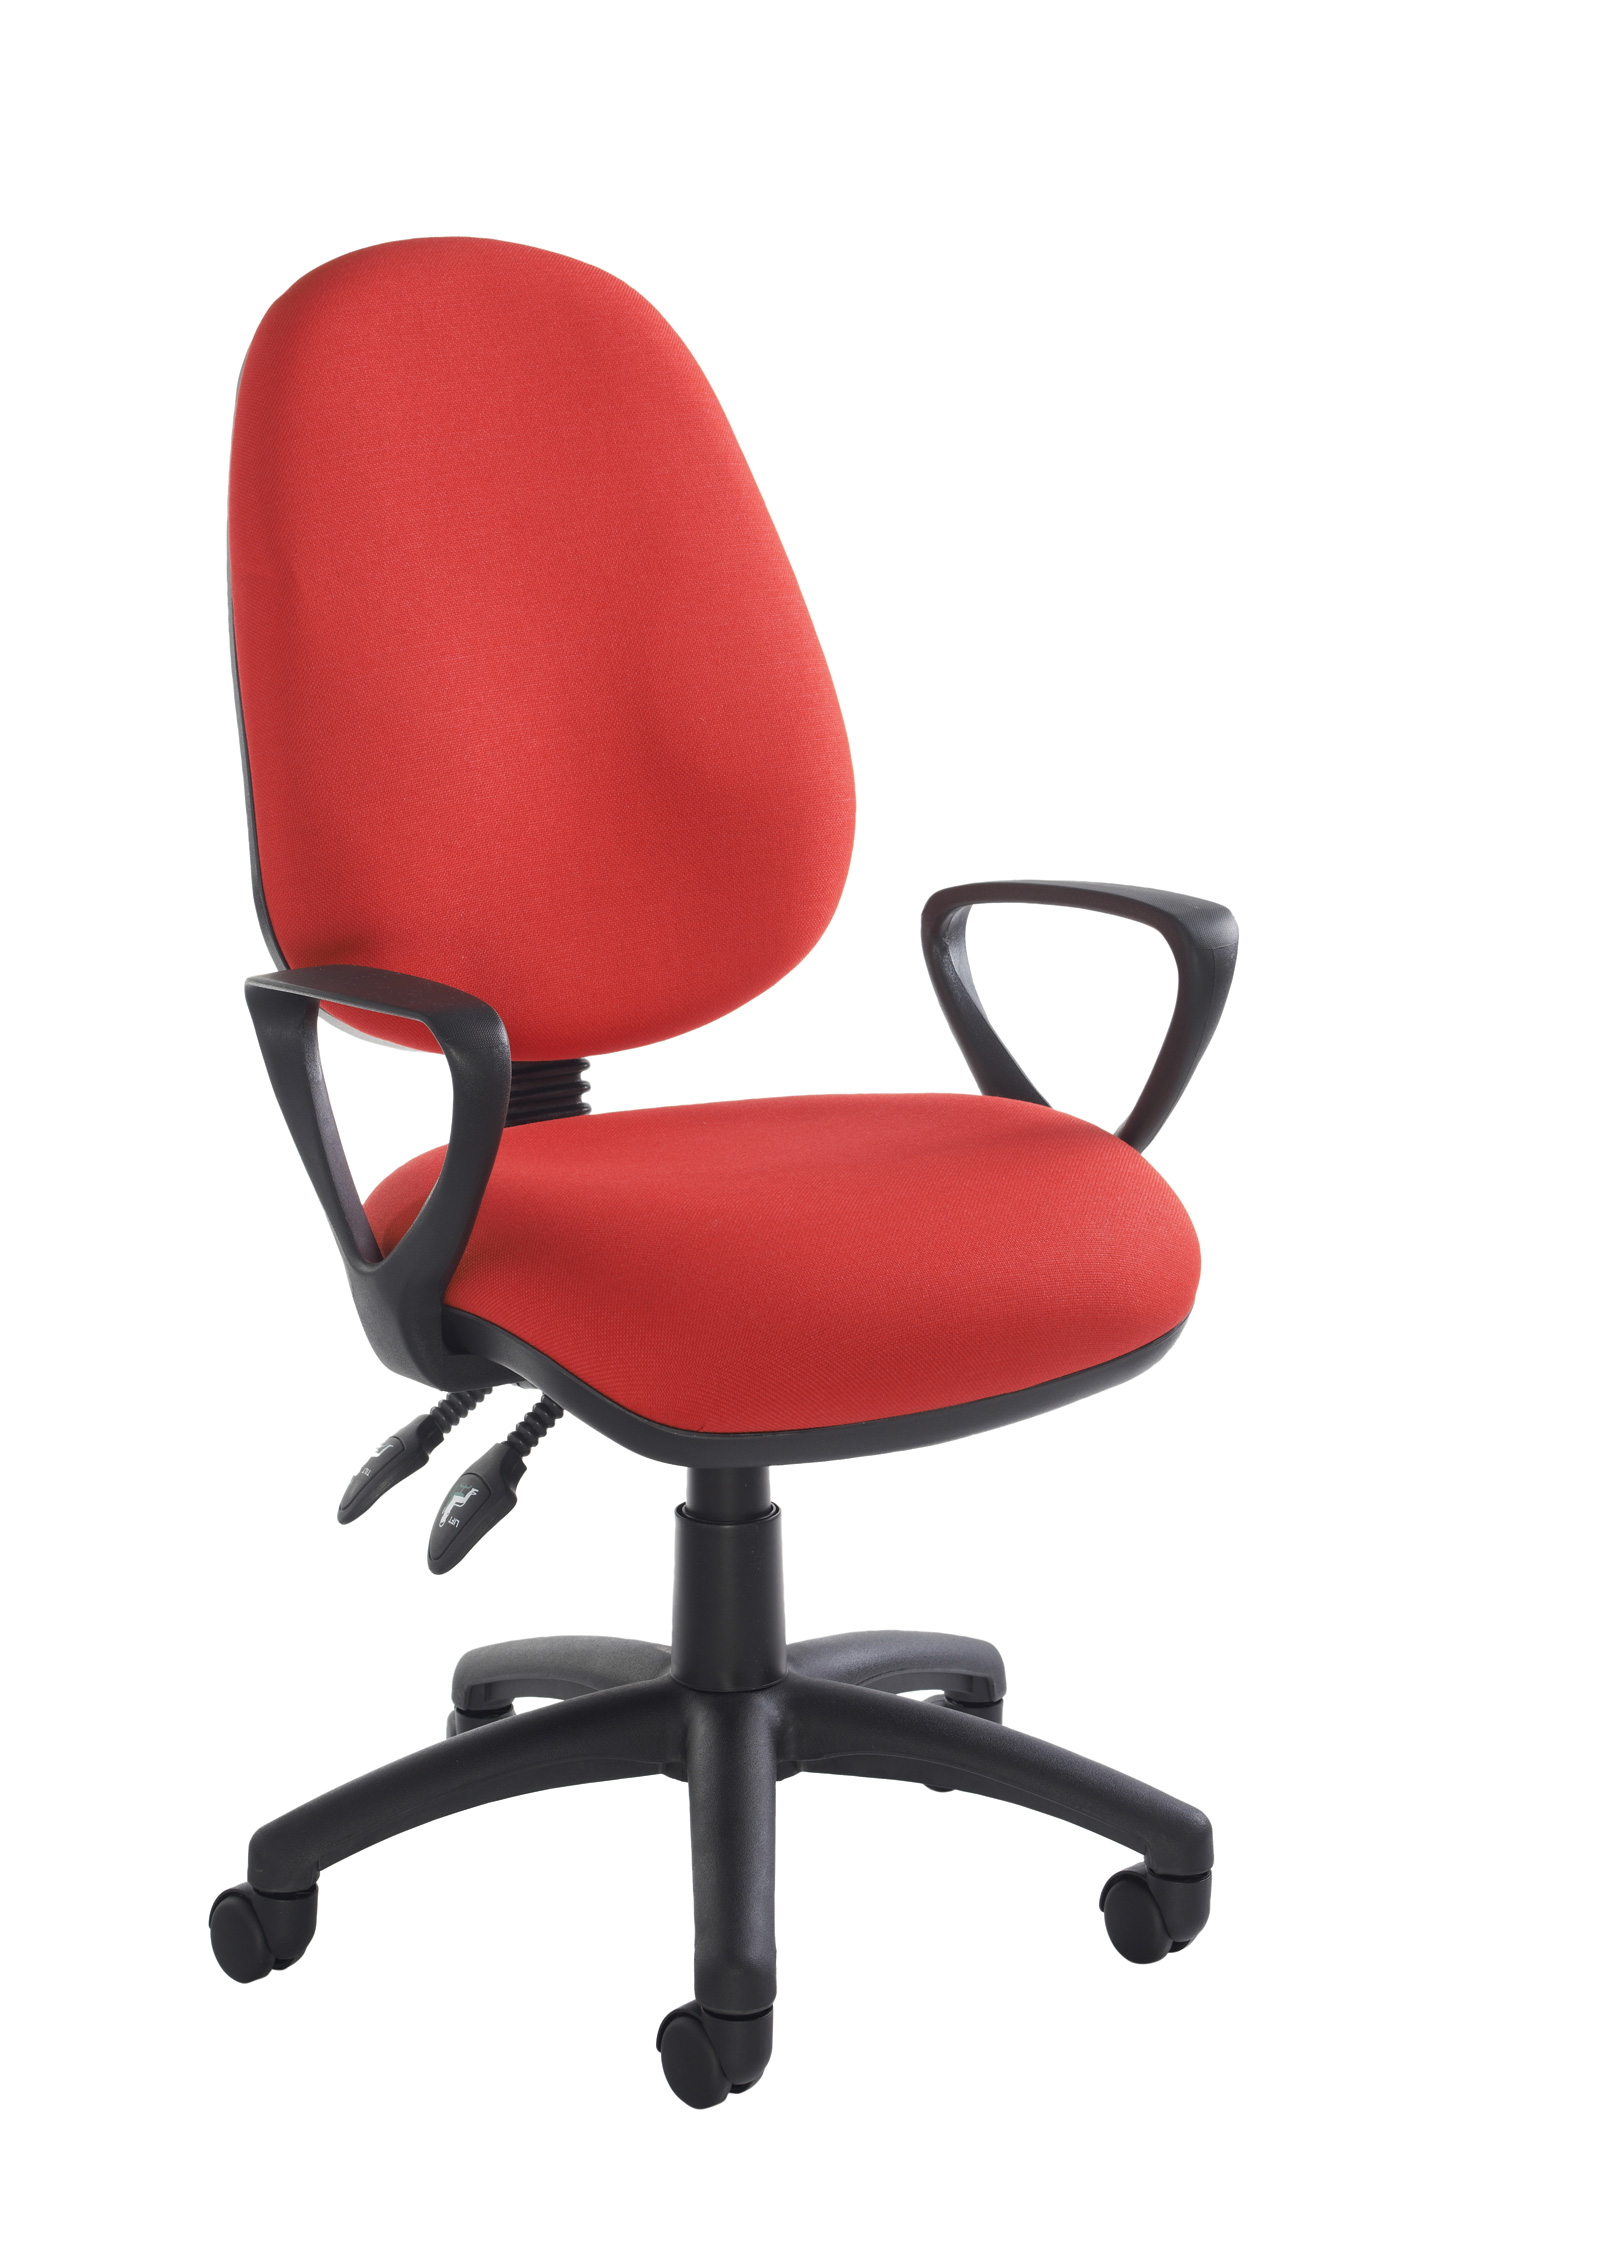 Vantage 100 2 lever fabric operator chair with fixed arms - red